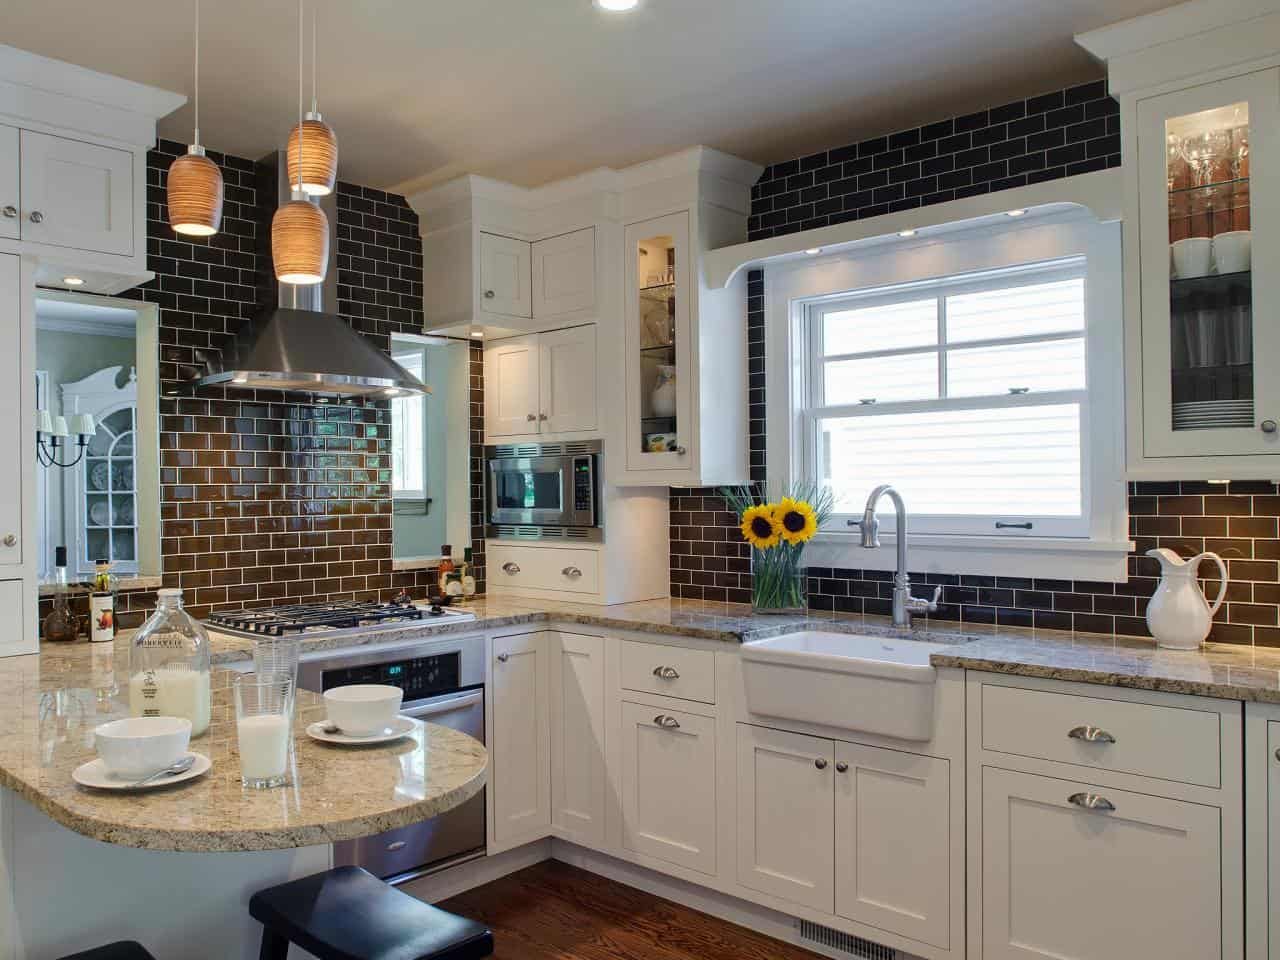 royal kitchen cabinets 11 kitchen backsplash ideas you should consider 2019